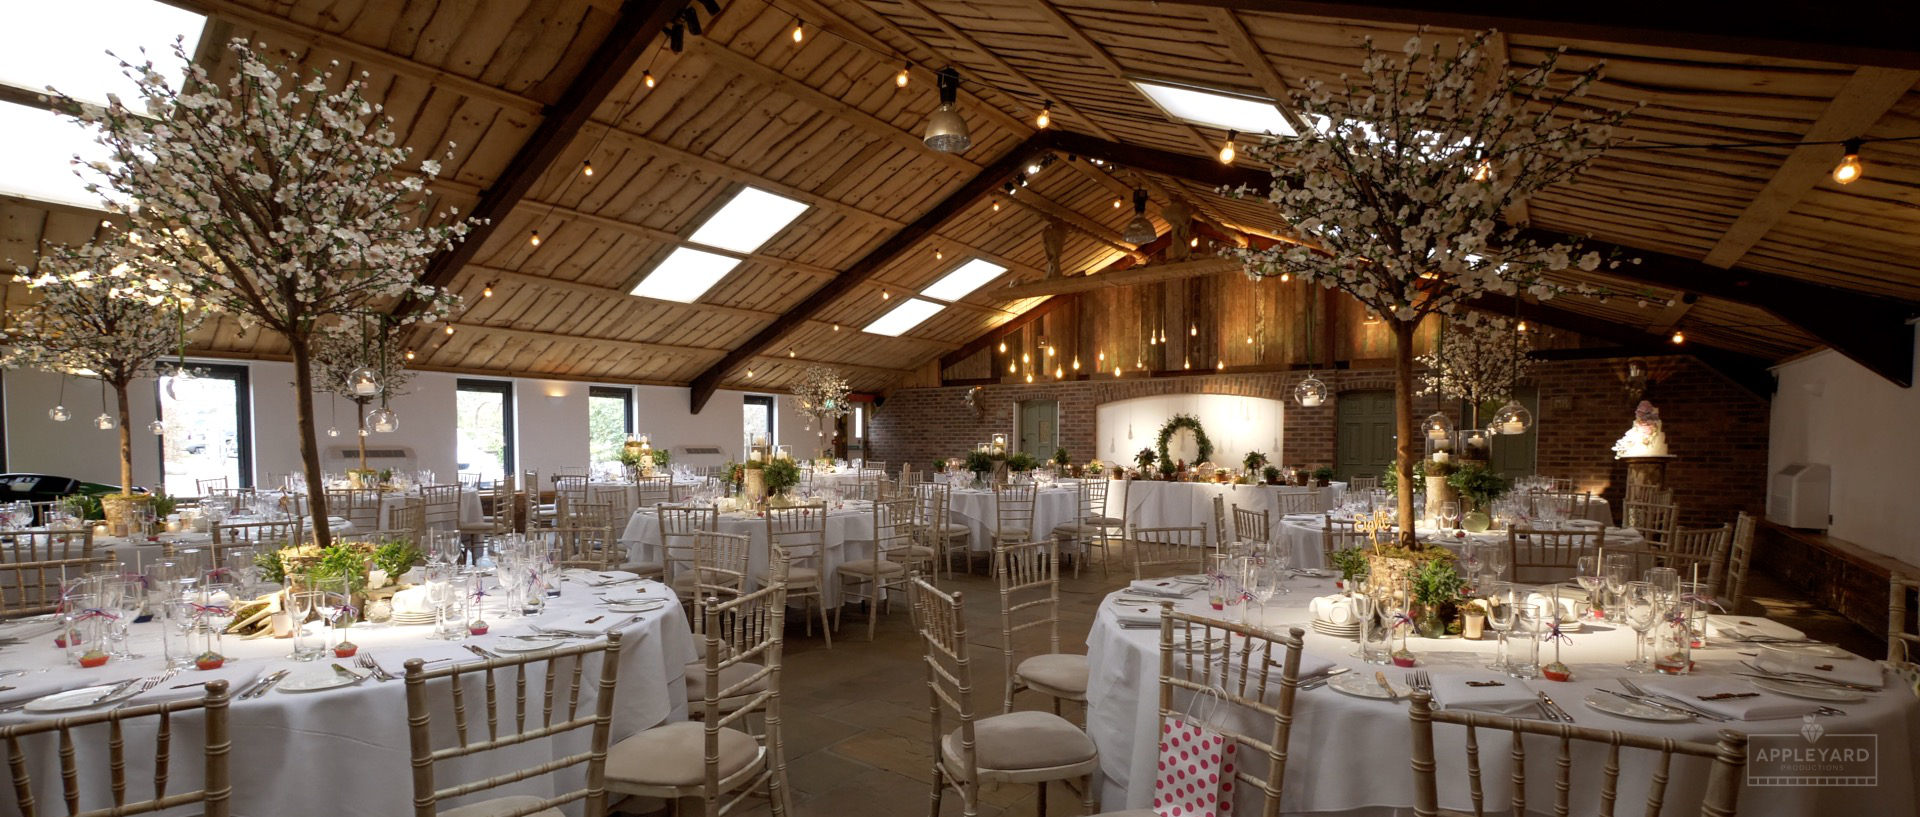 OWEN HOUSE WEDDING BARN 1.jpg